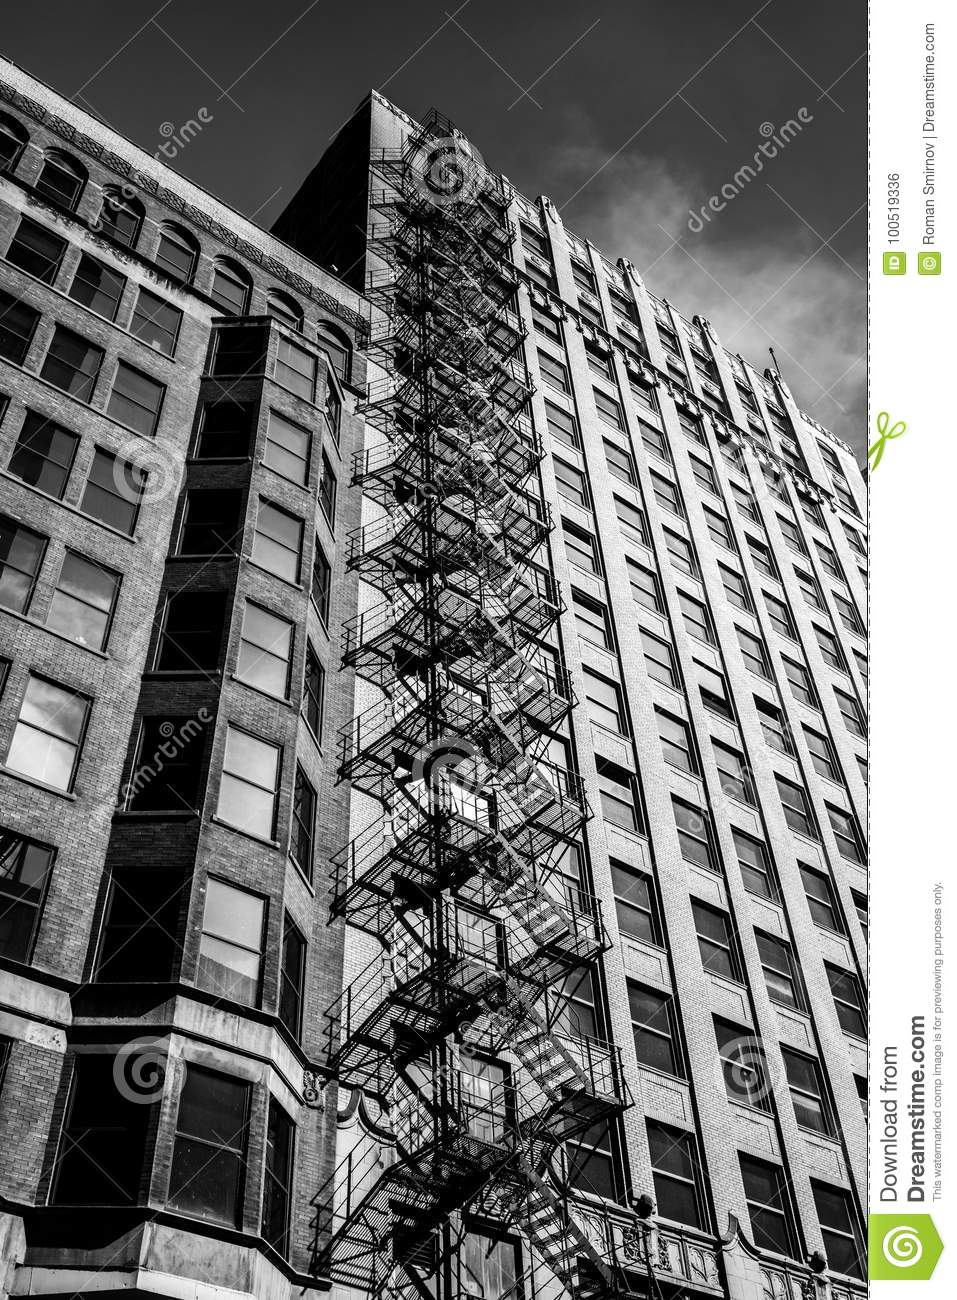 Chicago buildings black and white photography